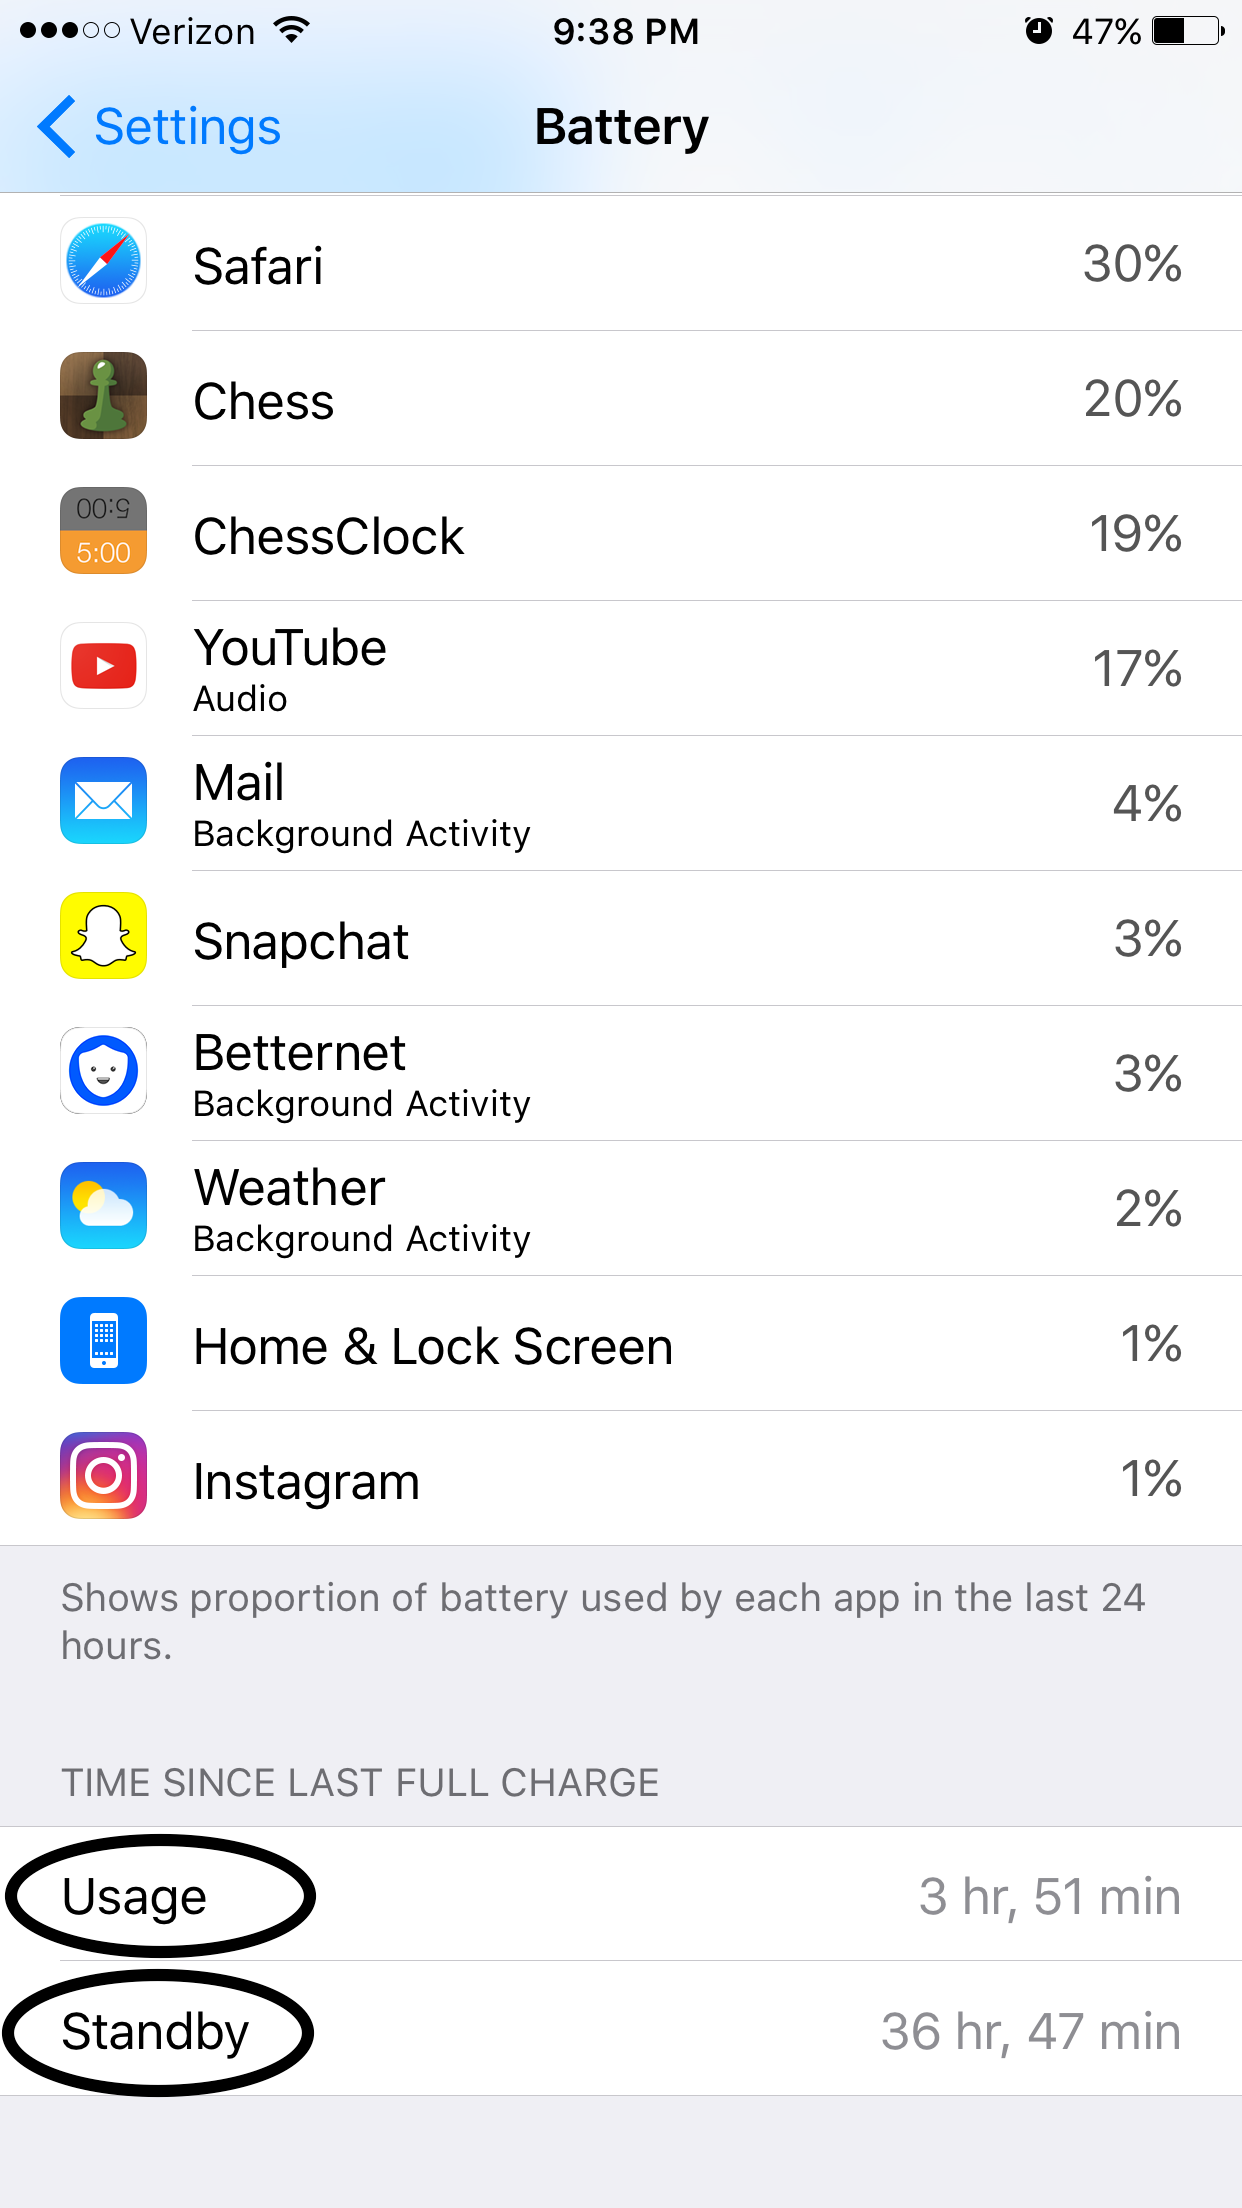 iPhone Battery usage and standby options